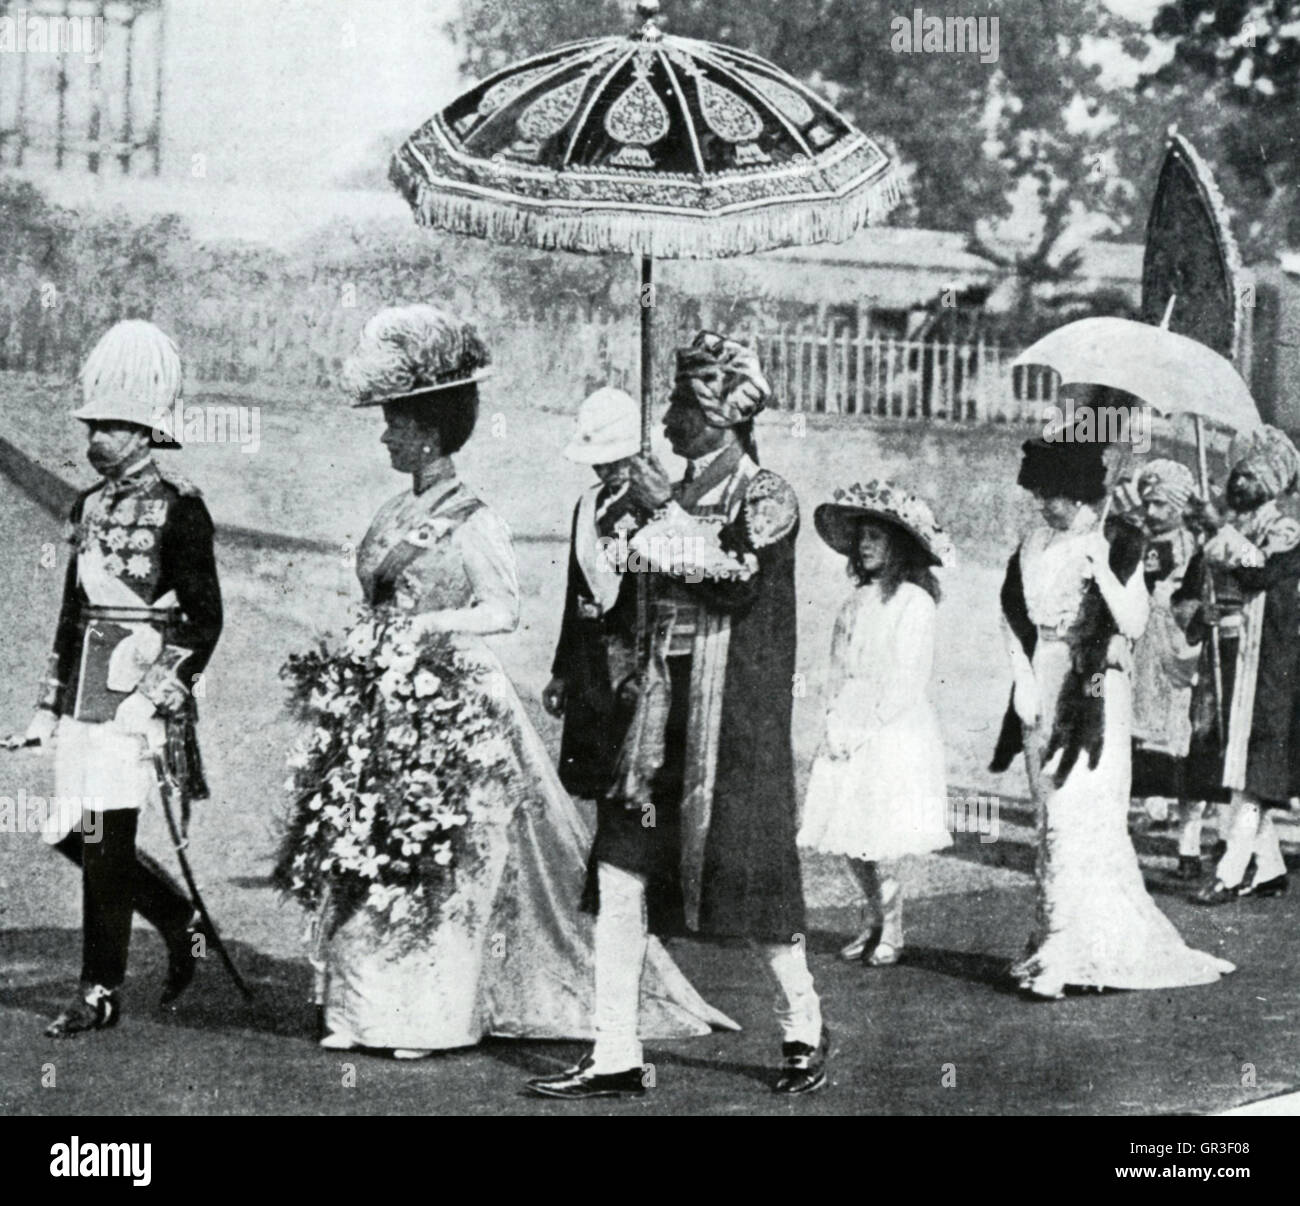 GEORGE V (1865-1936)  with Queen Mary at his Coronation Durbar in Delhi, December 1902 - Stock Image